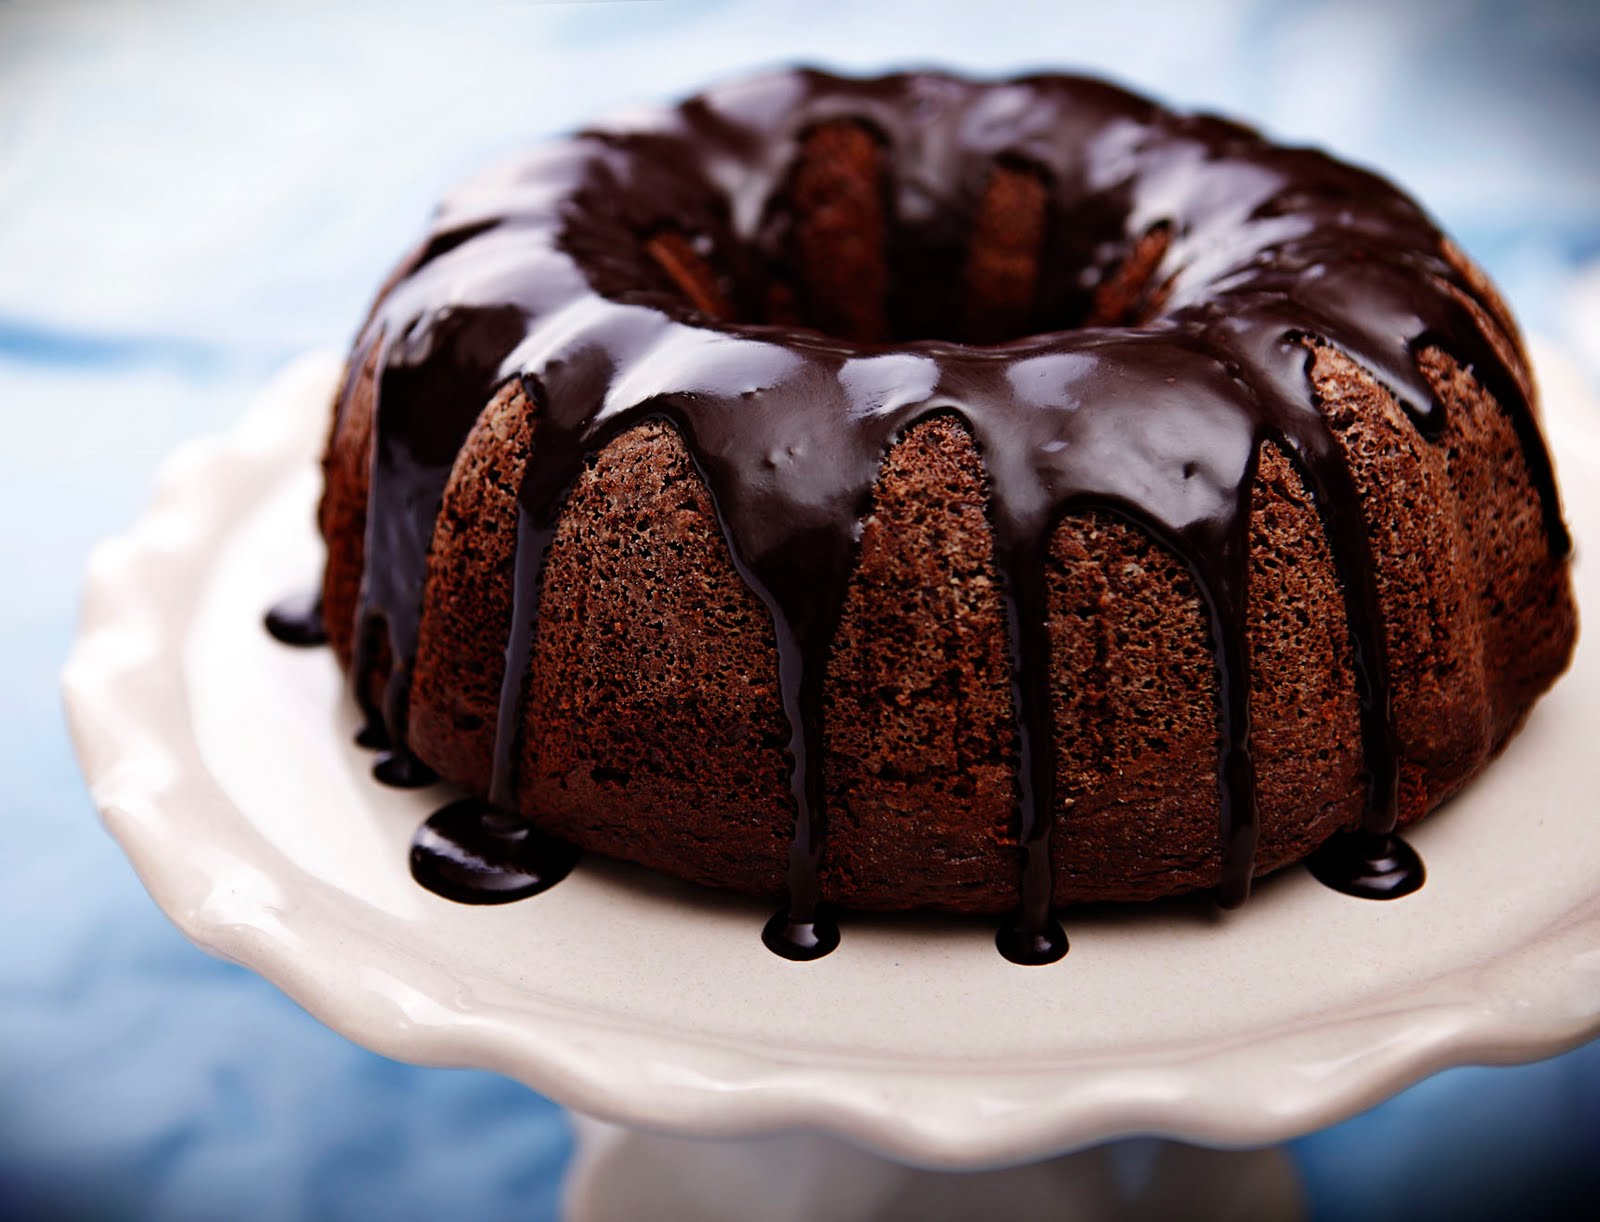 Confessions of a Bake-aholic: Double Chocolate Bundt Cake